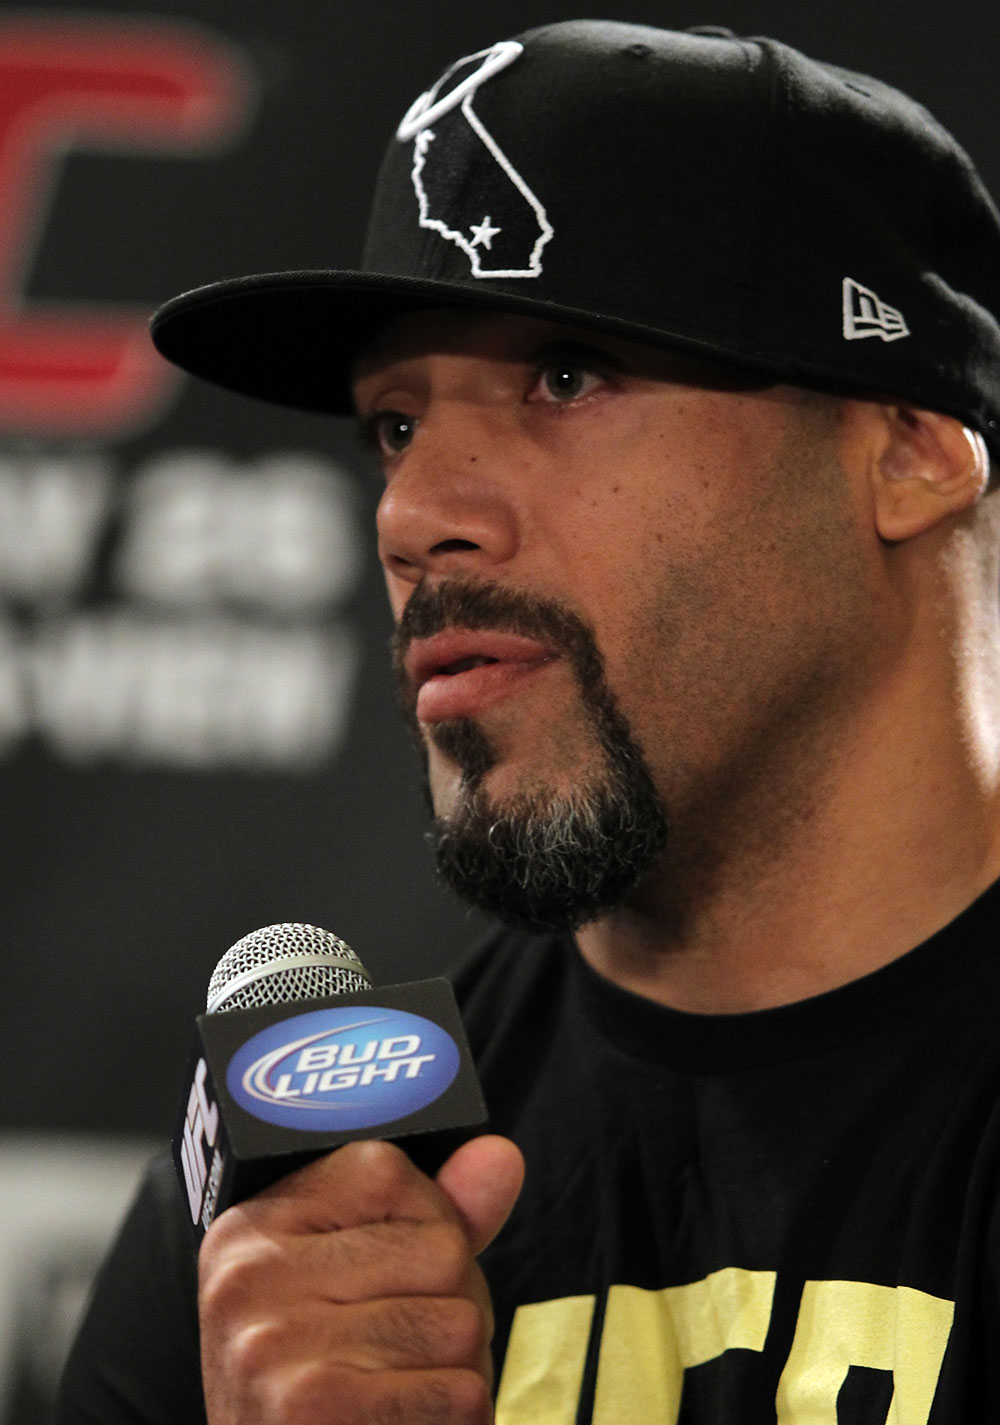 LAS VEGAS, NV - MAY 24:   Lavar Johnson attends the UFC 146 press conference at MGM Grand on May 24, 2012 in Las Vegas, Nevada.  (Photo by Josh Hedges/Zuffa LLC/Zuffa LLC via Getty Images)